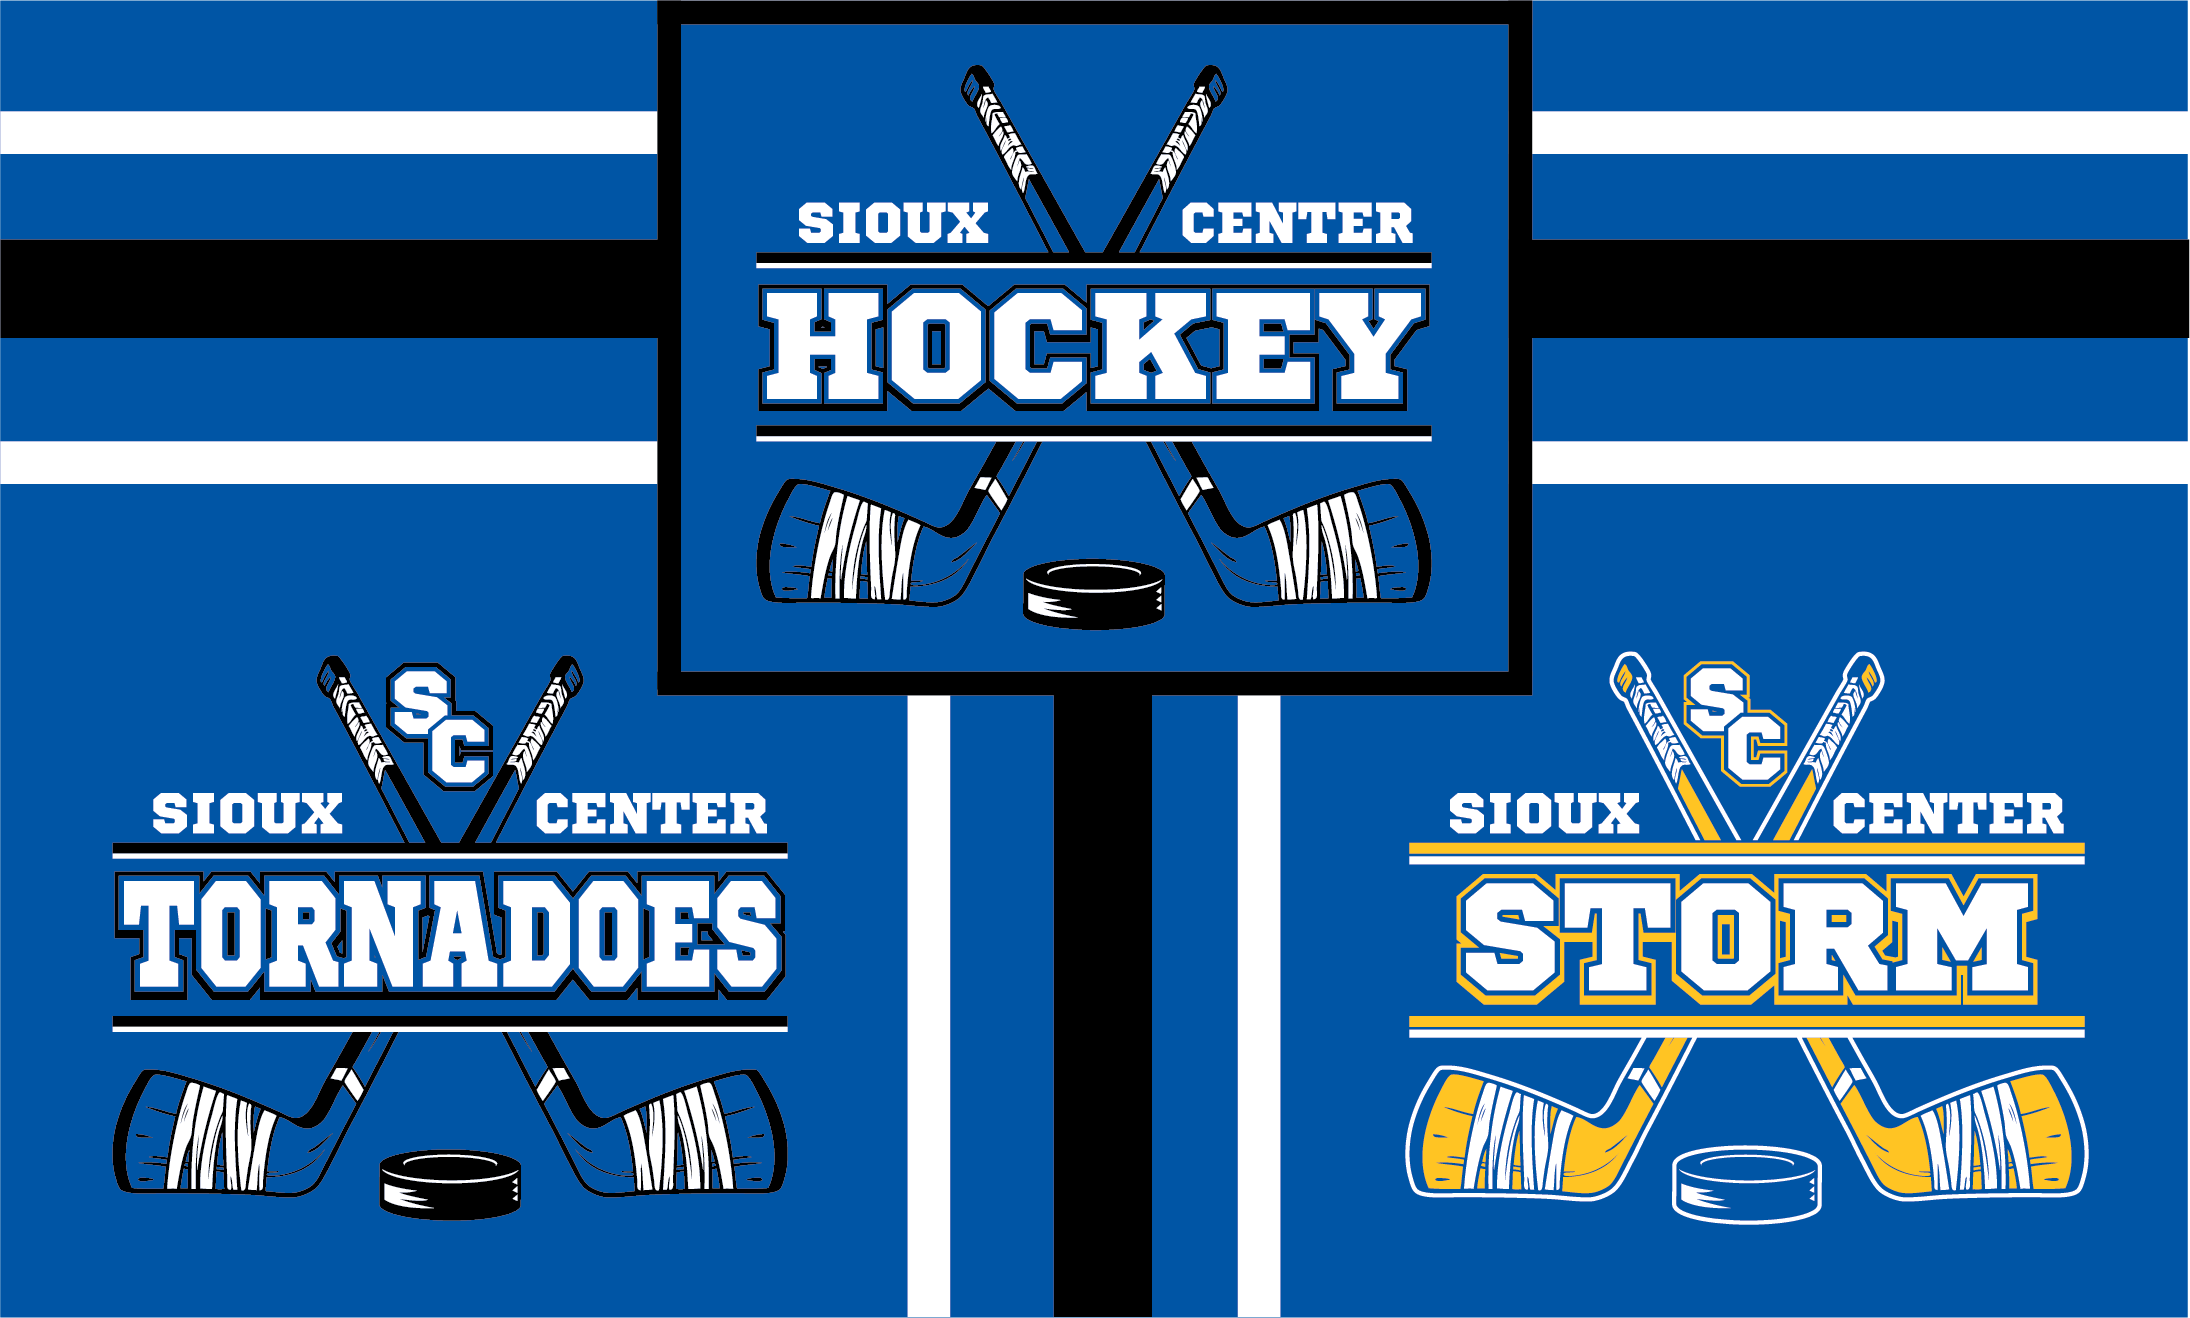 Sioux Center Hockey